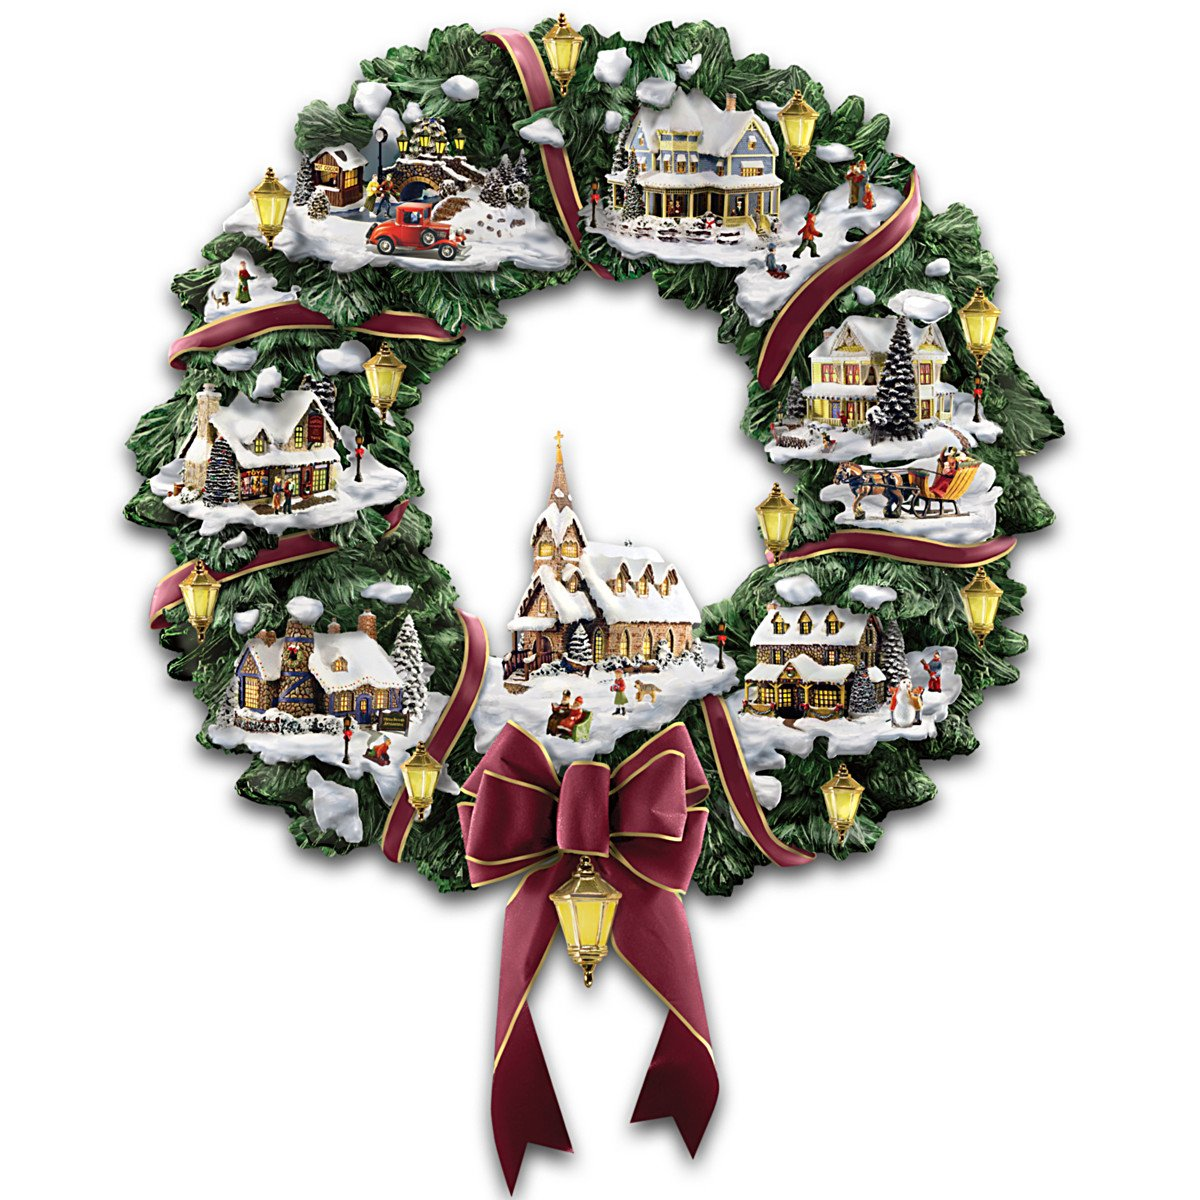 Image of Thomas Kinkade Christmas Village Wreath with Lights